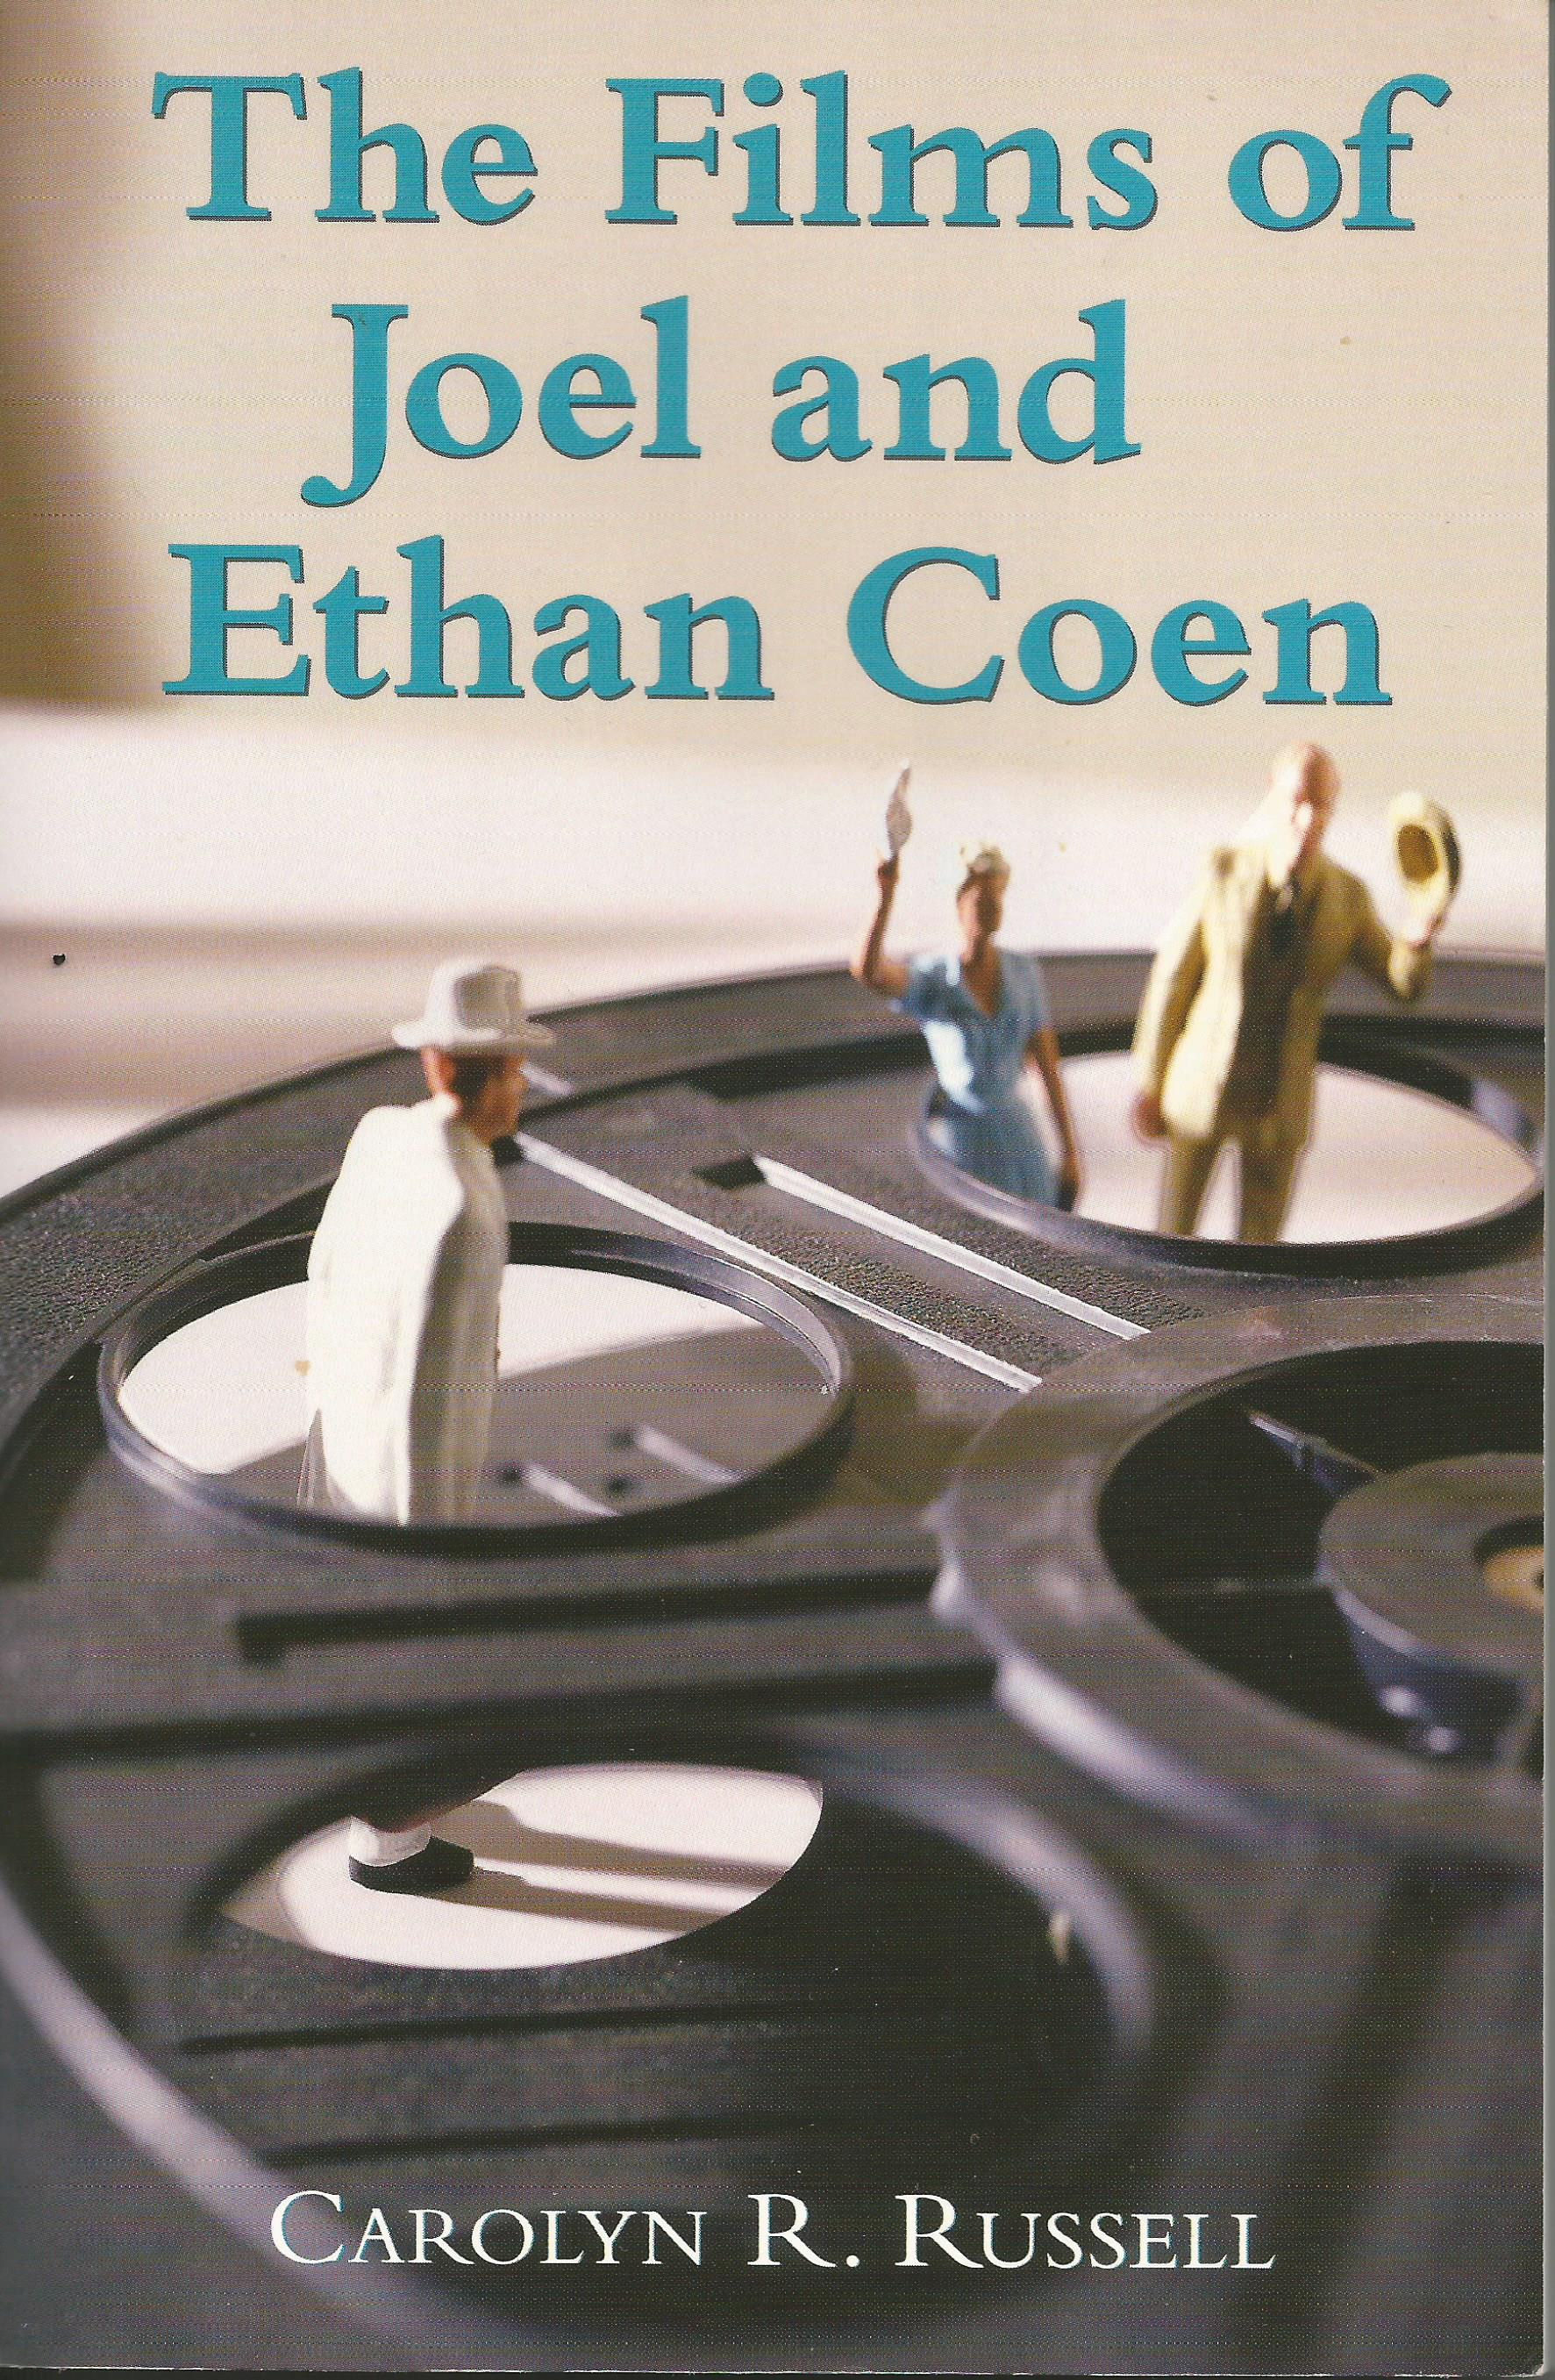 Films of Joel and Ethan Coen - Cover - Carolyn R Russell